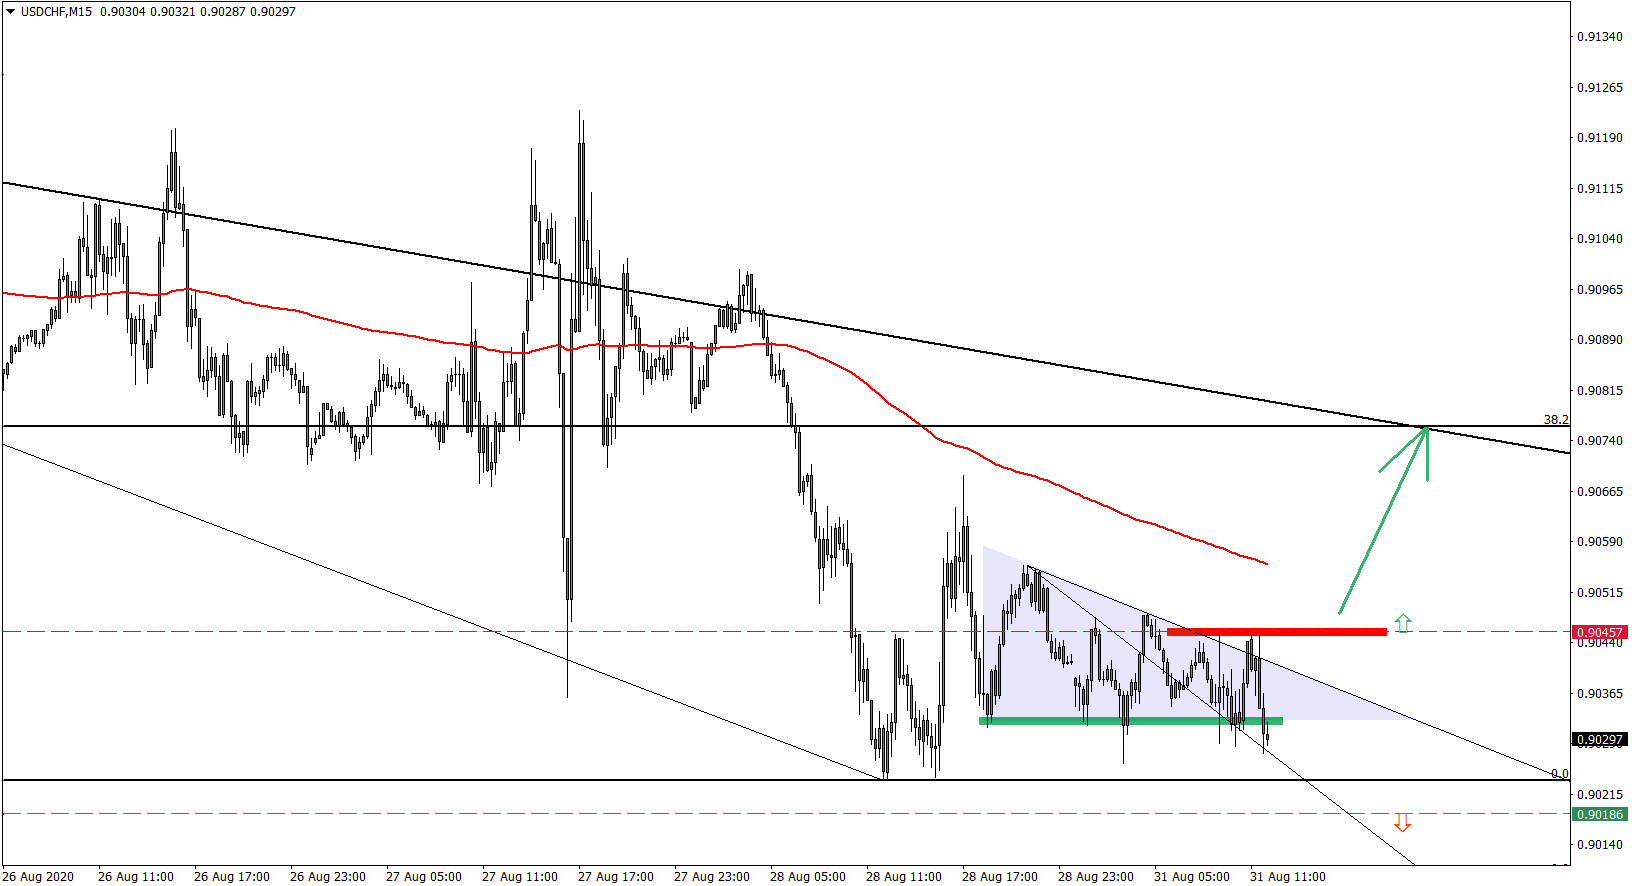 USDCHF 15minute chart August 31 2020